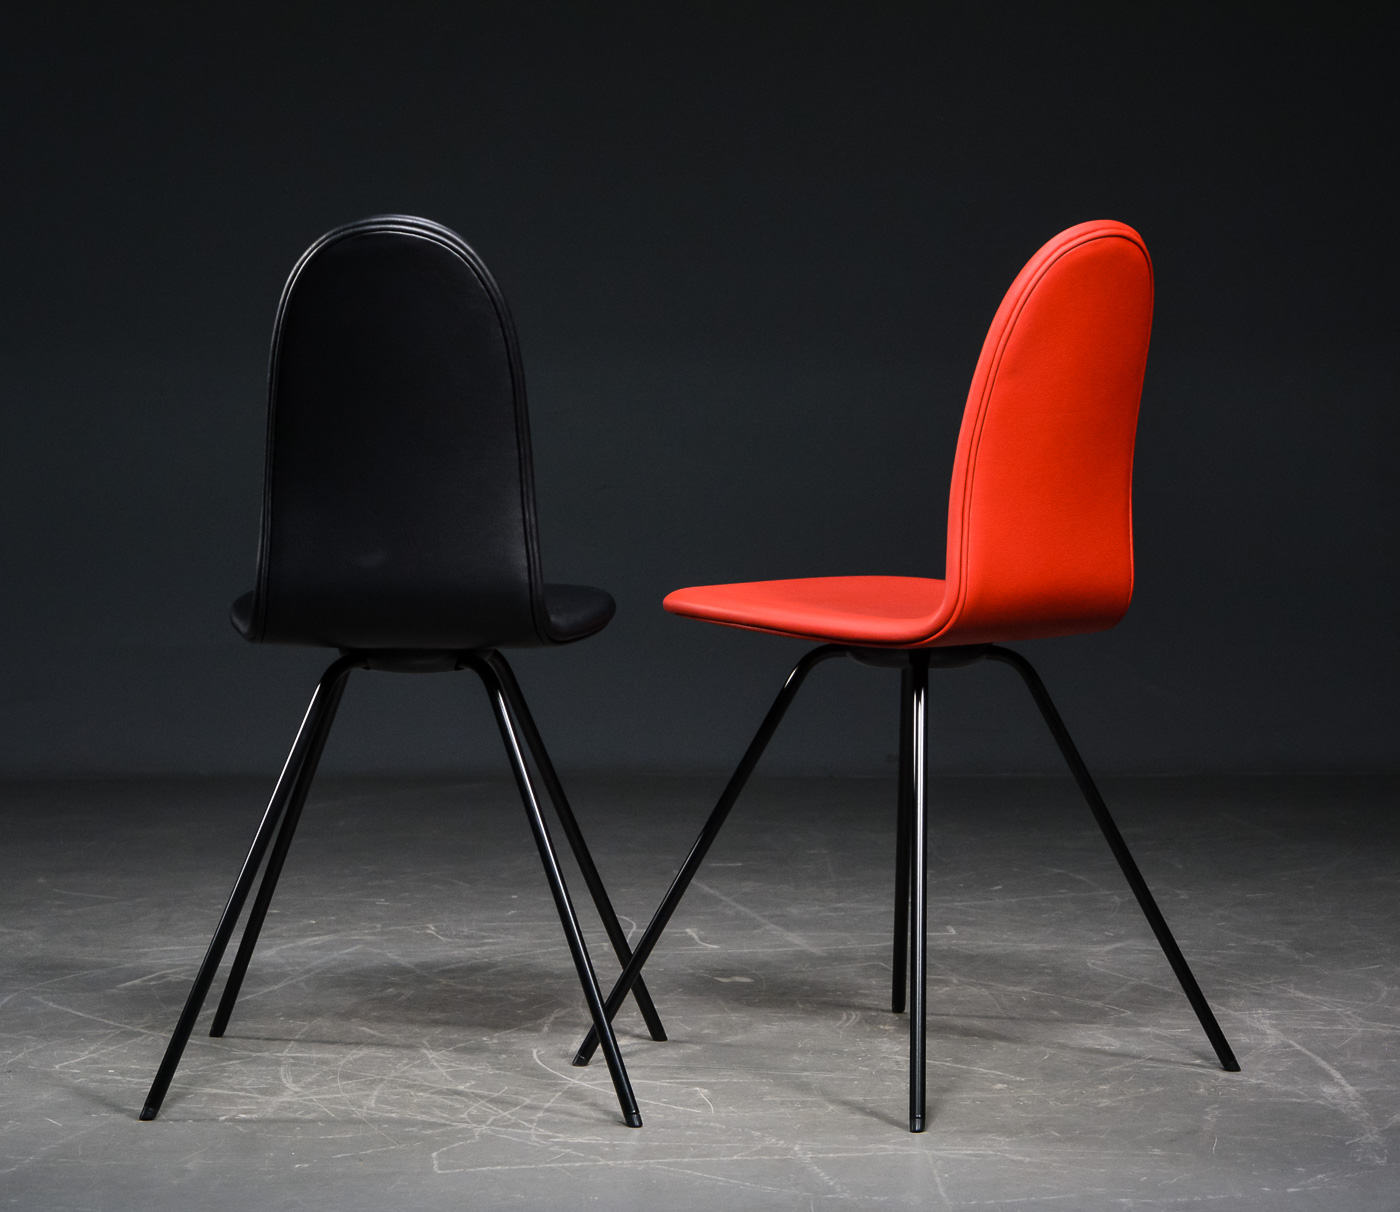 Arne Jacobsen. Four chairs, 'the Tongue' (4)